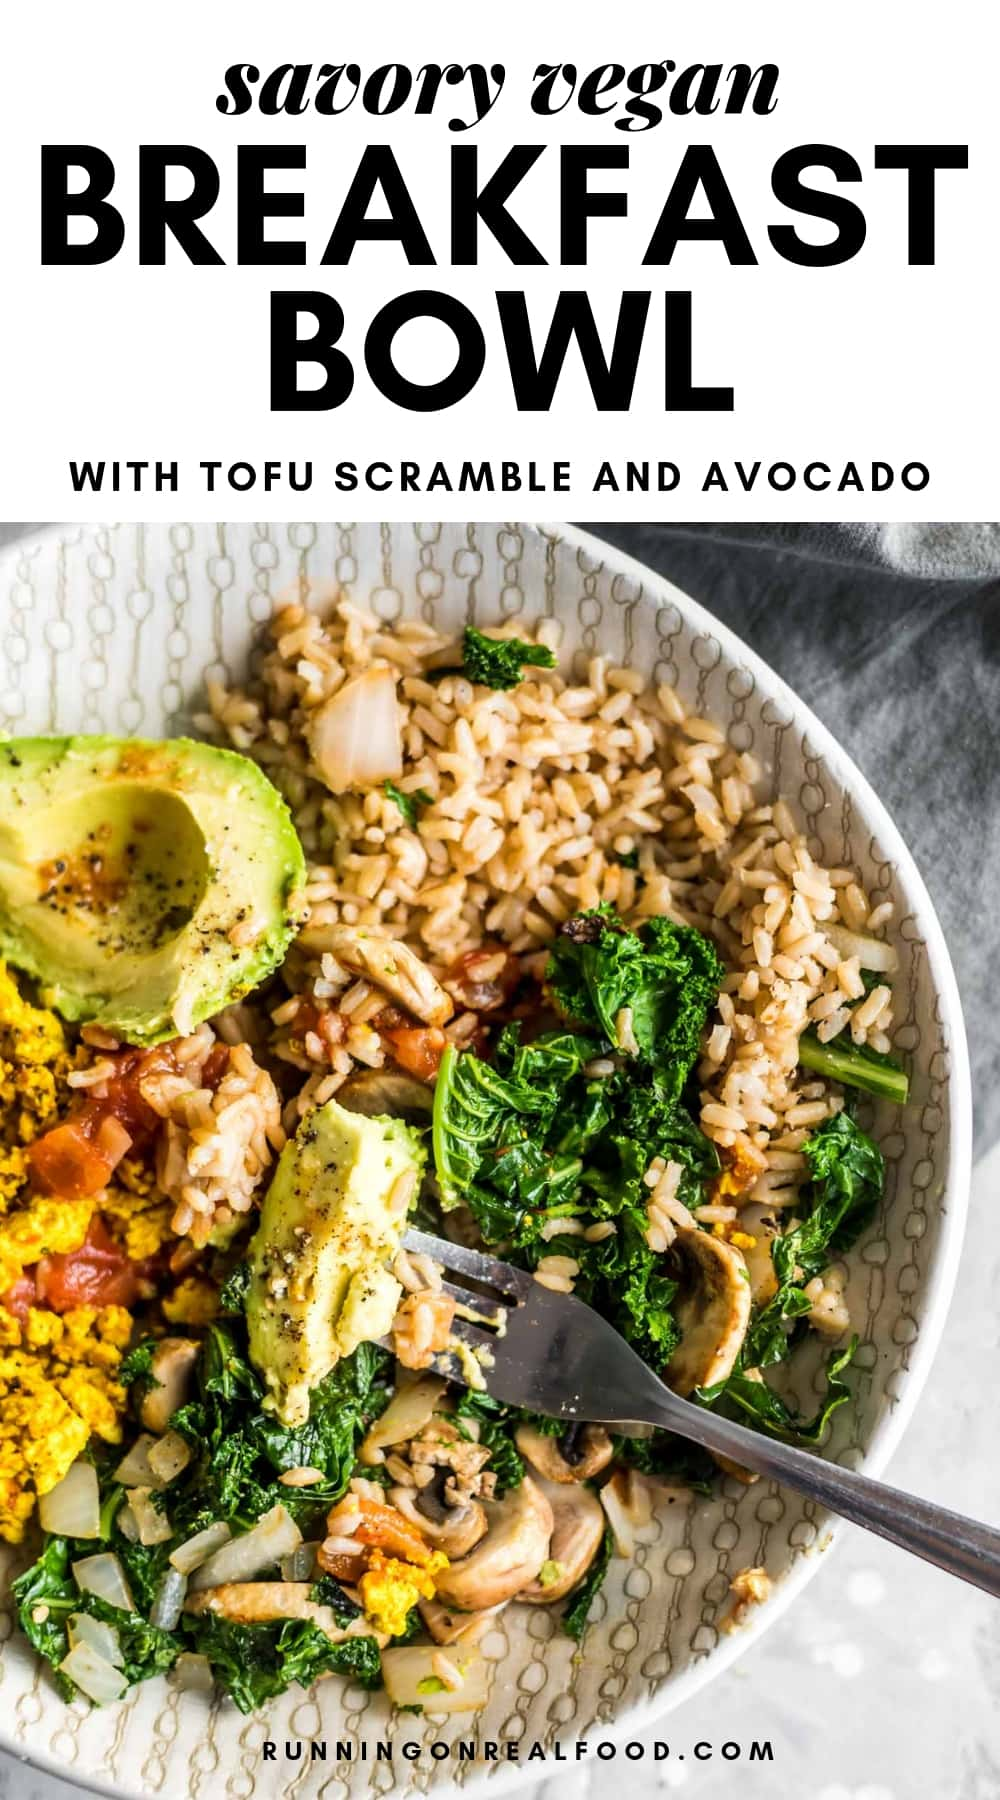 Savory Vegan Breakfast Bowl Pinterest Image